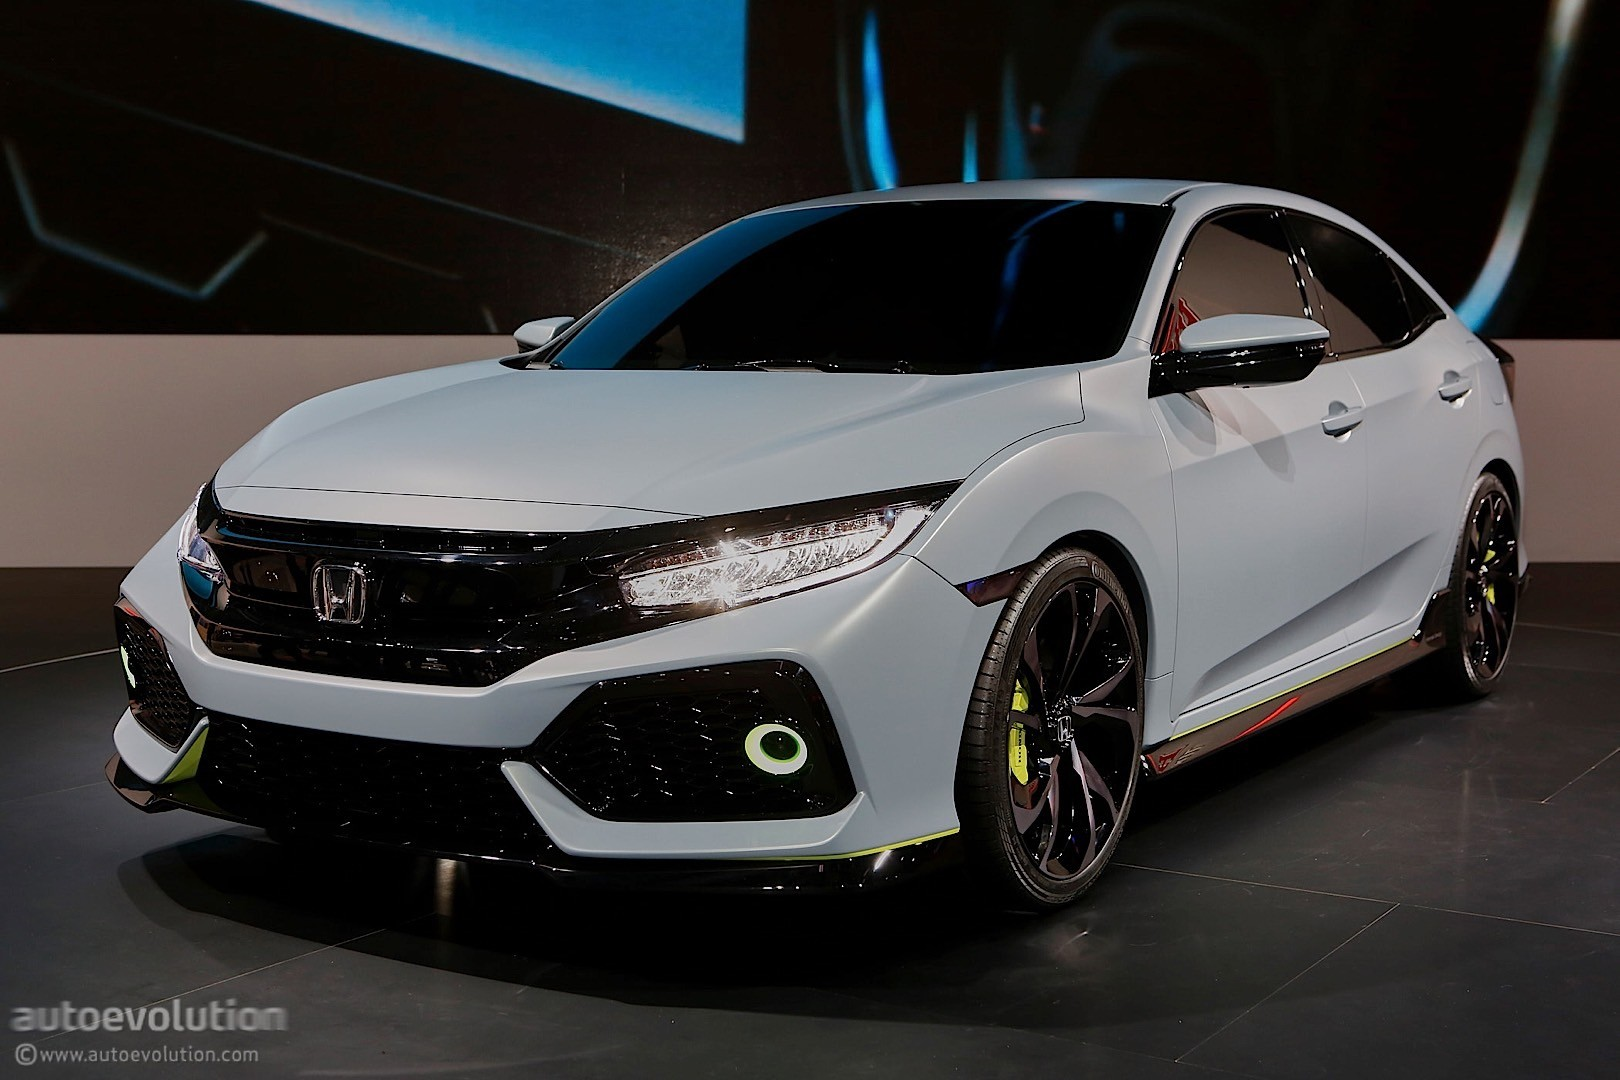 Honda Civic Two Door >> 2017 Honda Civic Hatchback Previewed by Concept in Geneva - autoevolution